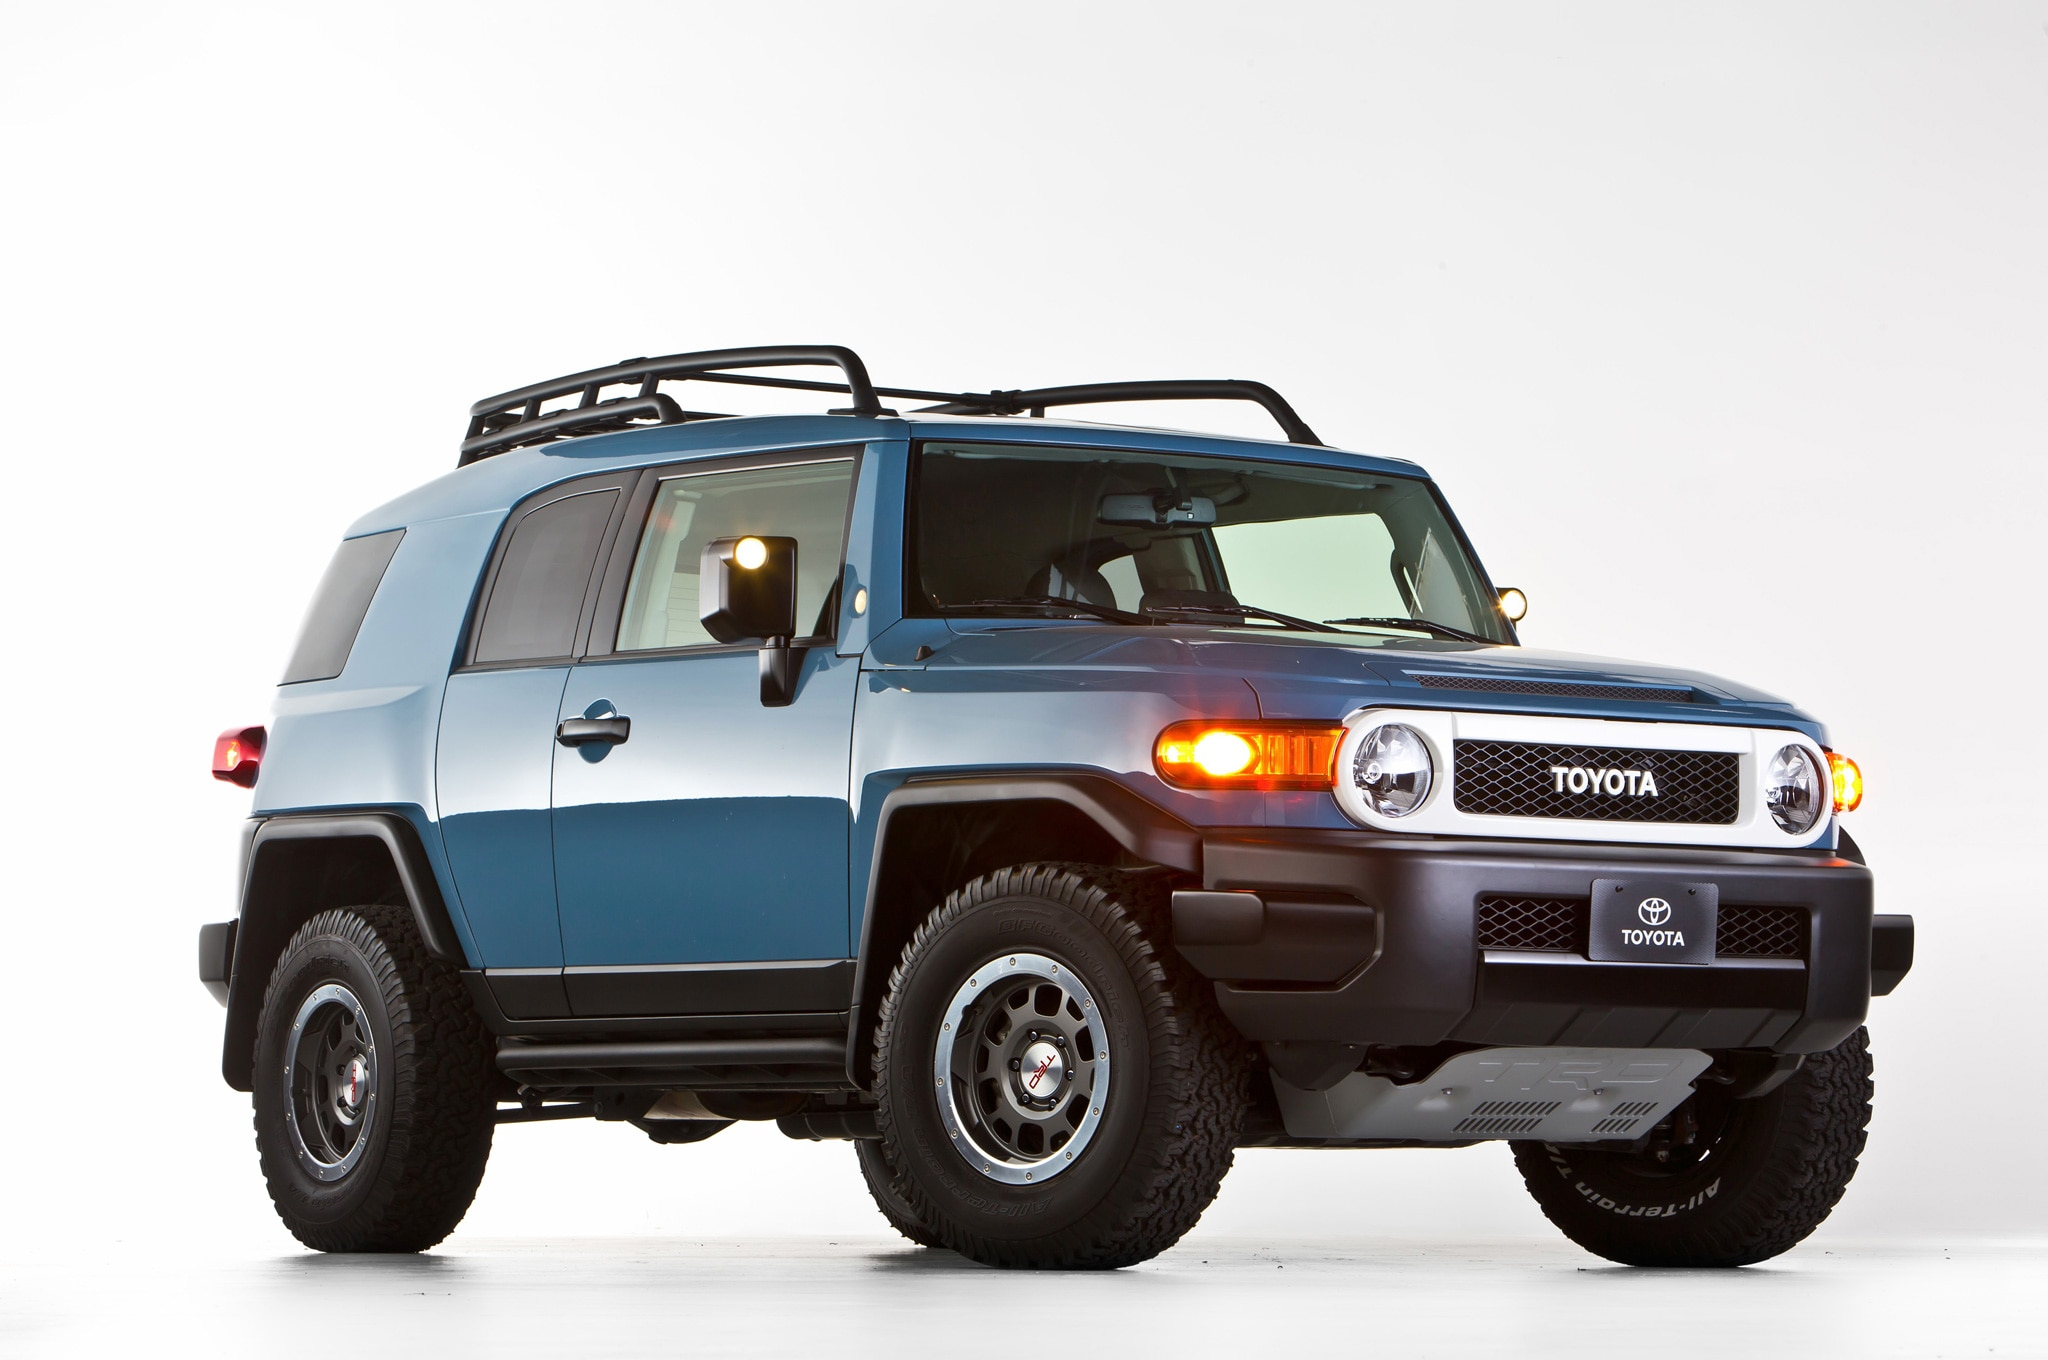 The Fj Company Sport Offers Classic Toyota Land Cruisers For 1973 Cruiser Repair Manual 2014 Trail Teams Ultimate Edition Front Three Quarter